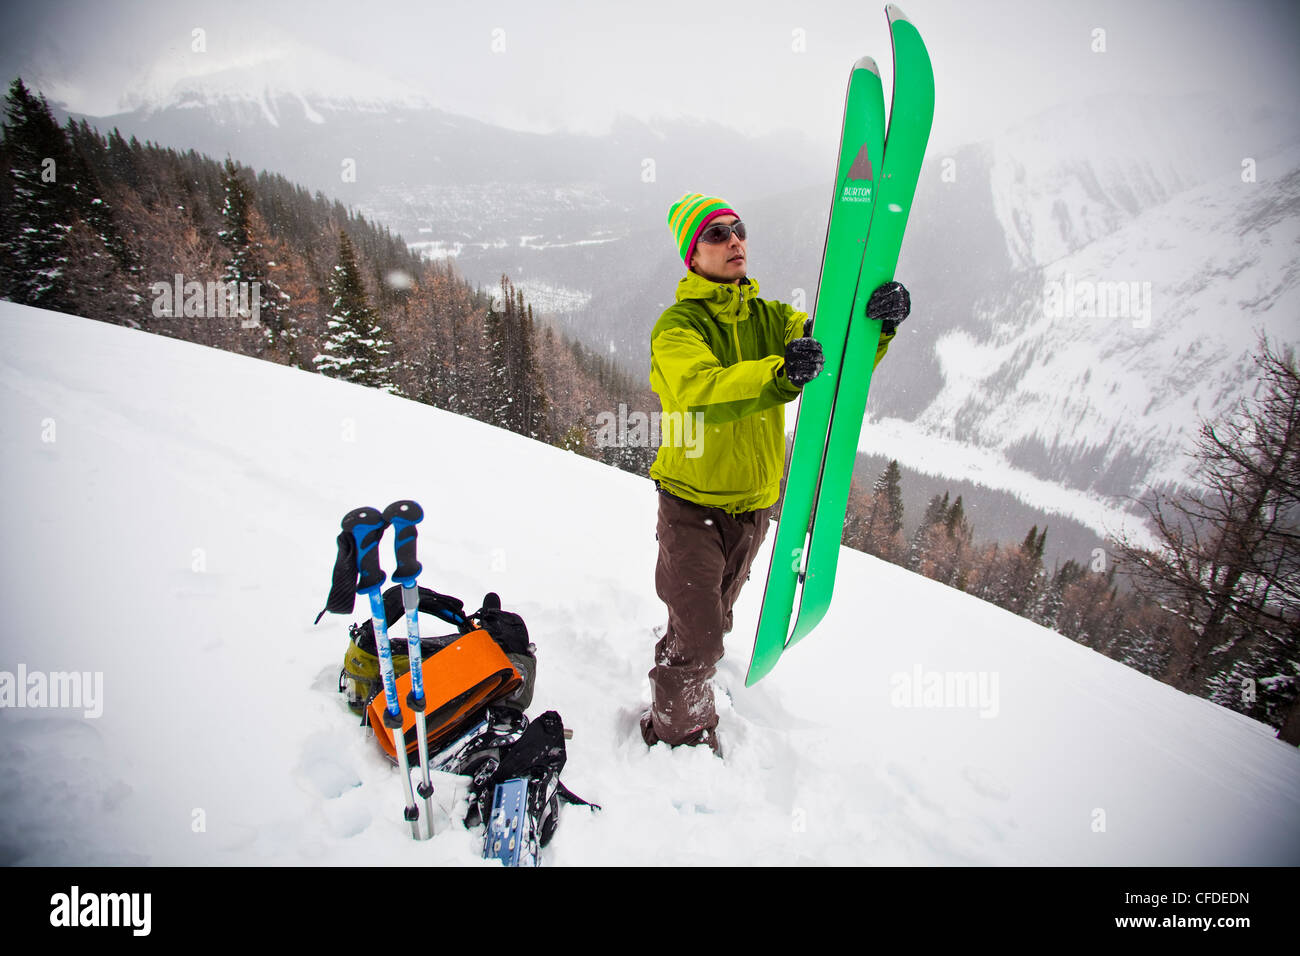 A backcountry snowboarder puts together his splitboard for the ride down, Tryst Lake, Kananaskis, Alberta, Canada - Stock Image